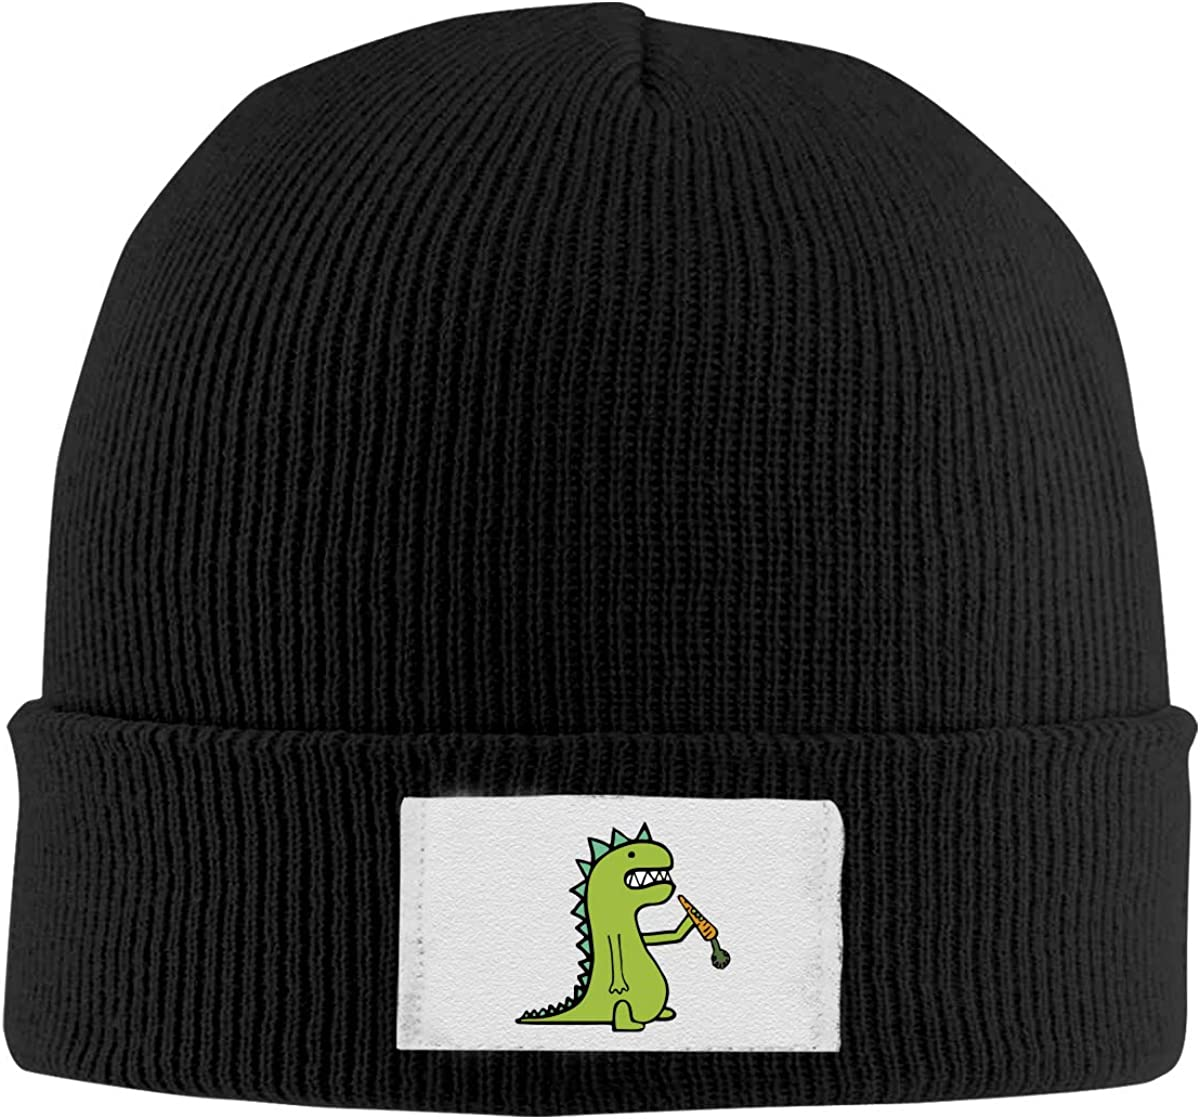 ASDGEGASFAS Unisex Hungry Dinosaur Skull Cap Knit Wool Beanie Hat Stretchy Solid Daily Wear